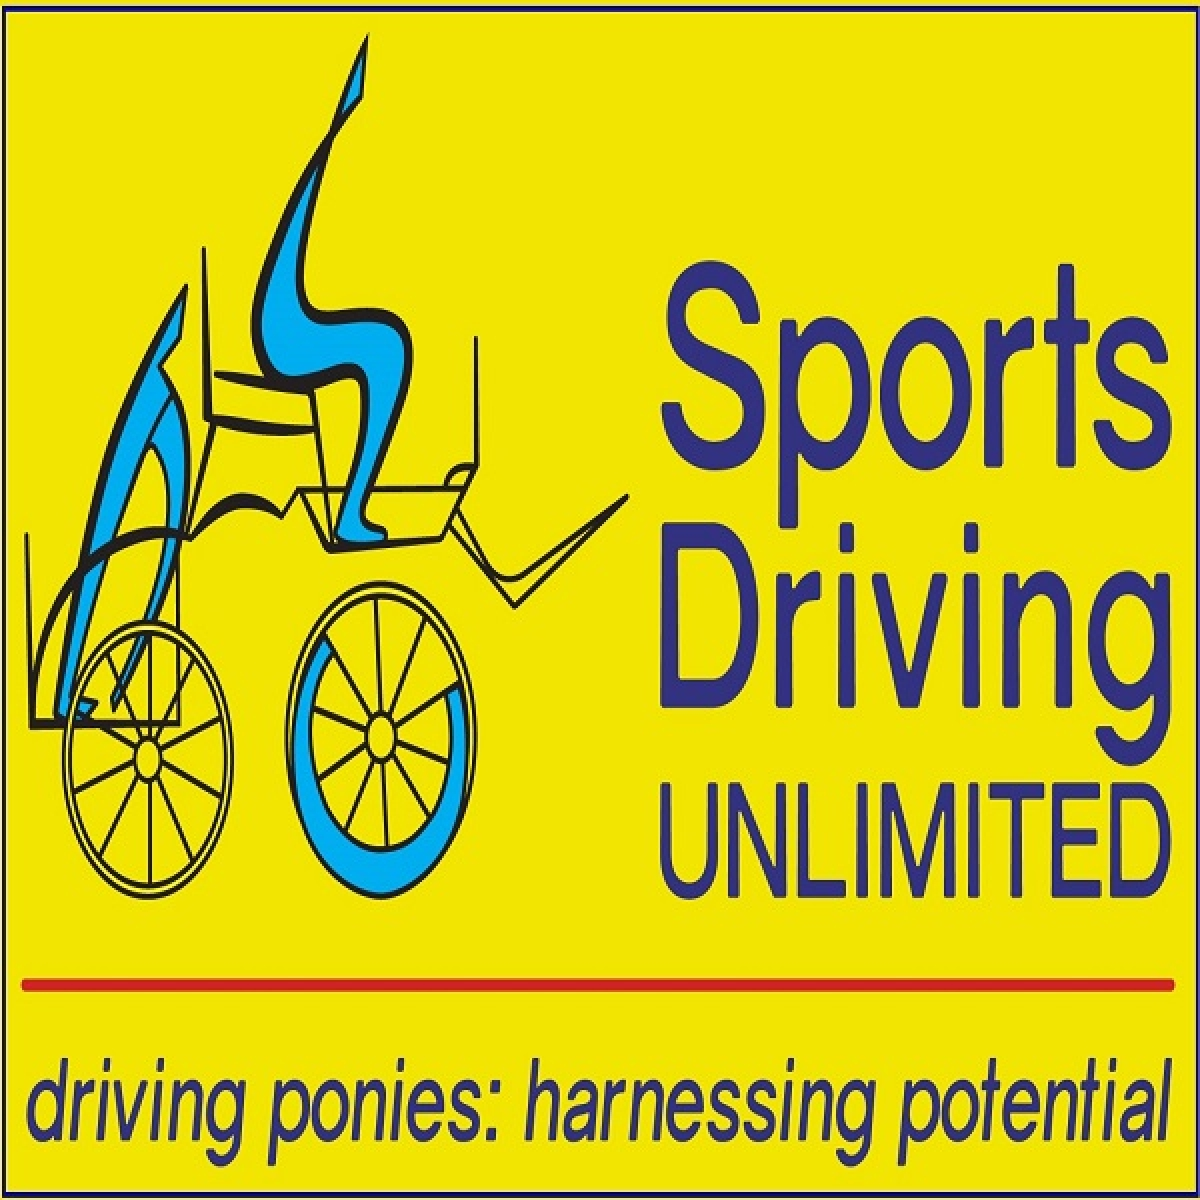 Sports Driving Unlimited eCards